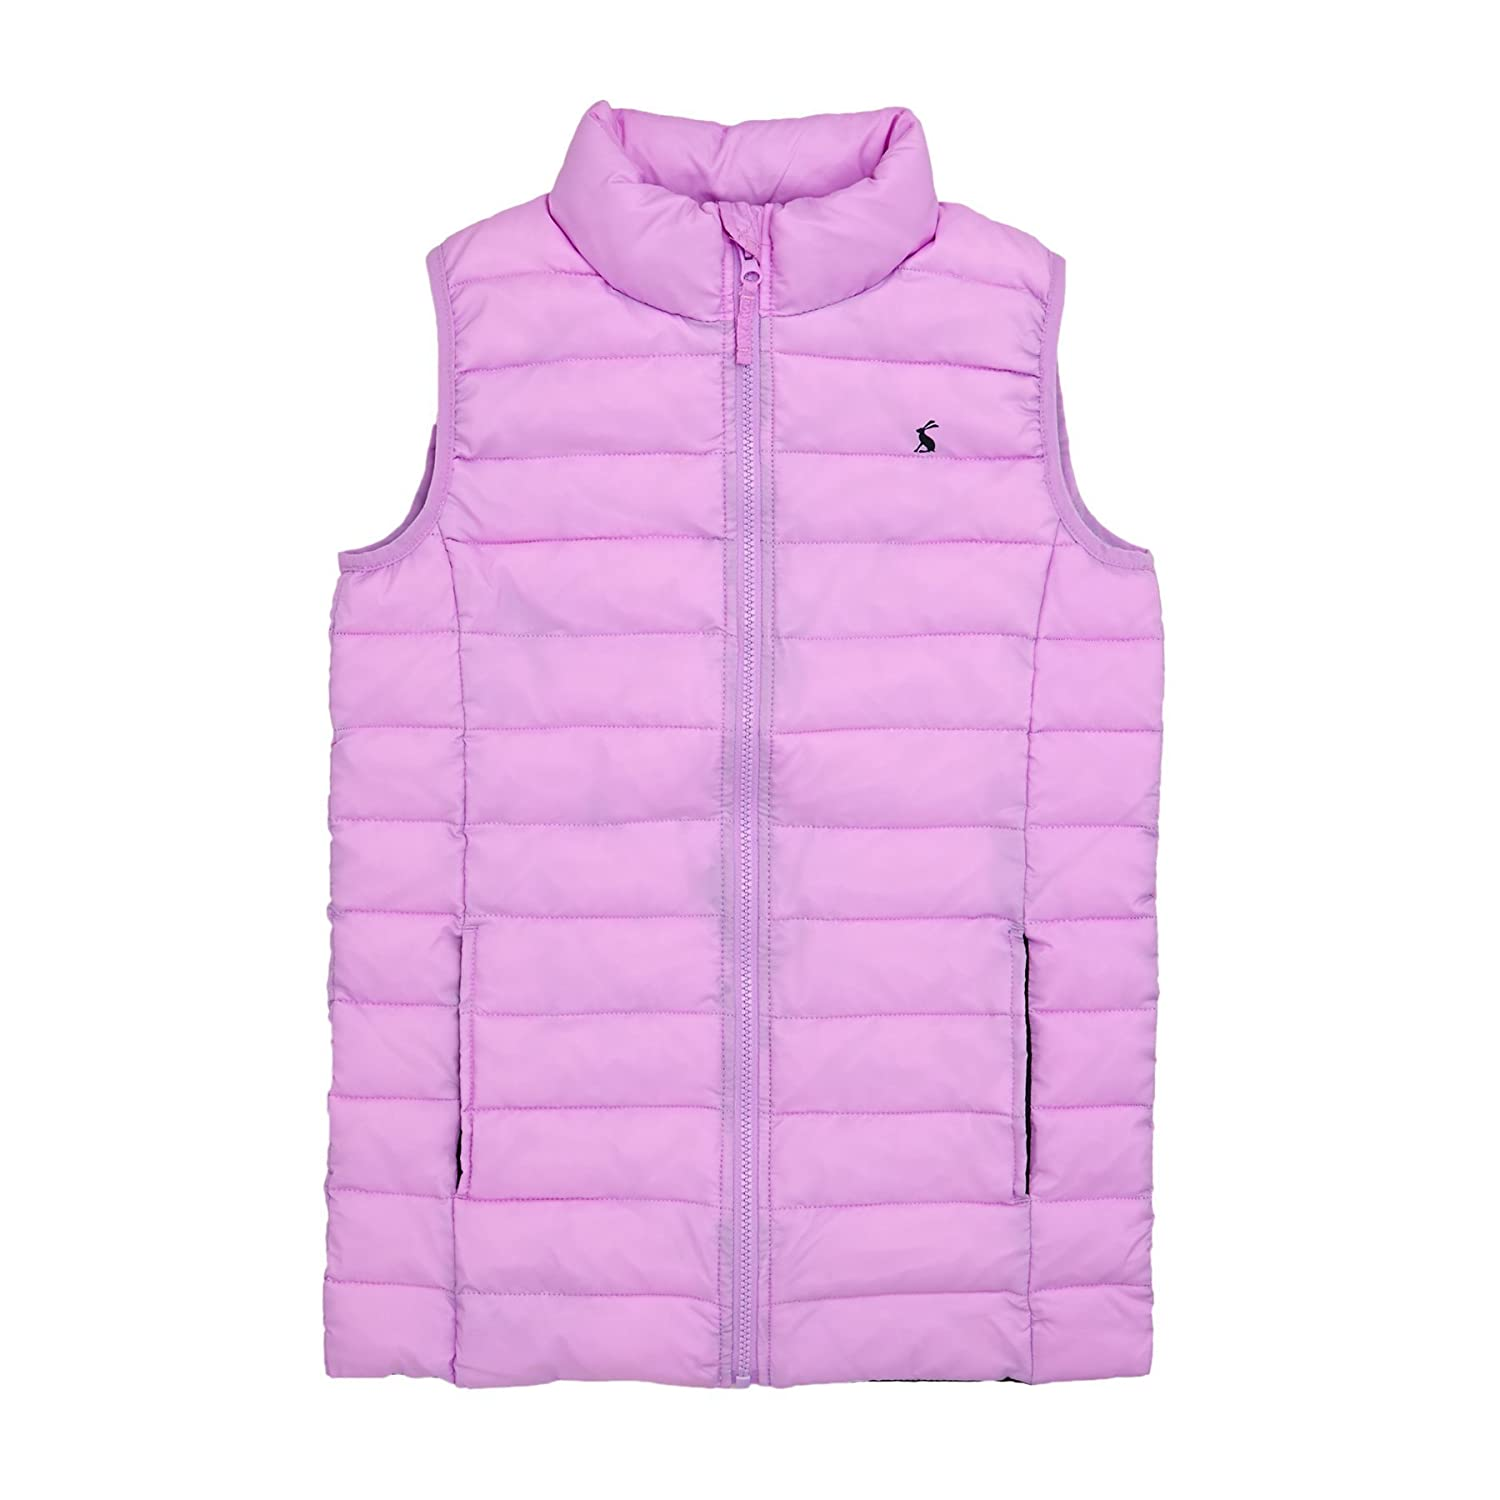 Joules Girls Crofton Padded Lightweight Packable Bodywarmer Gilet Joules Clothing